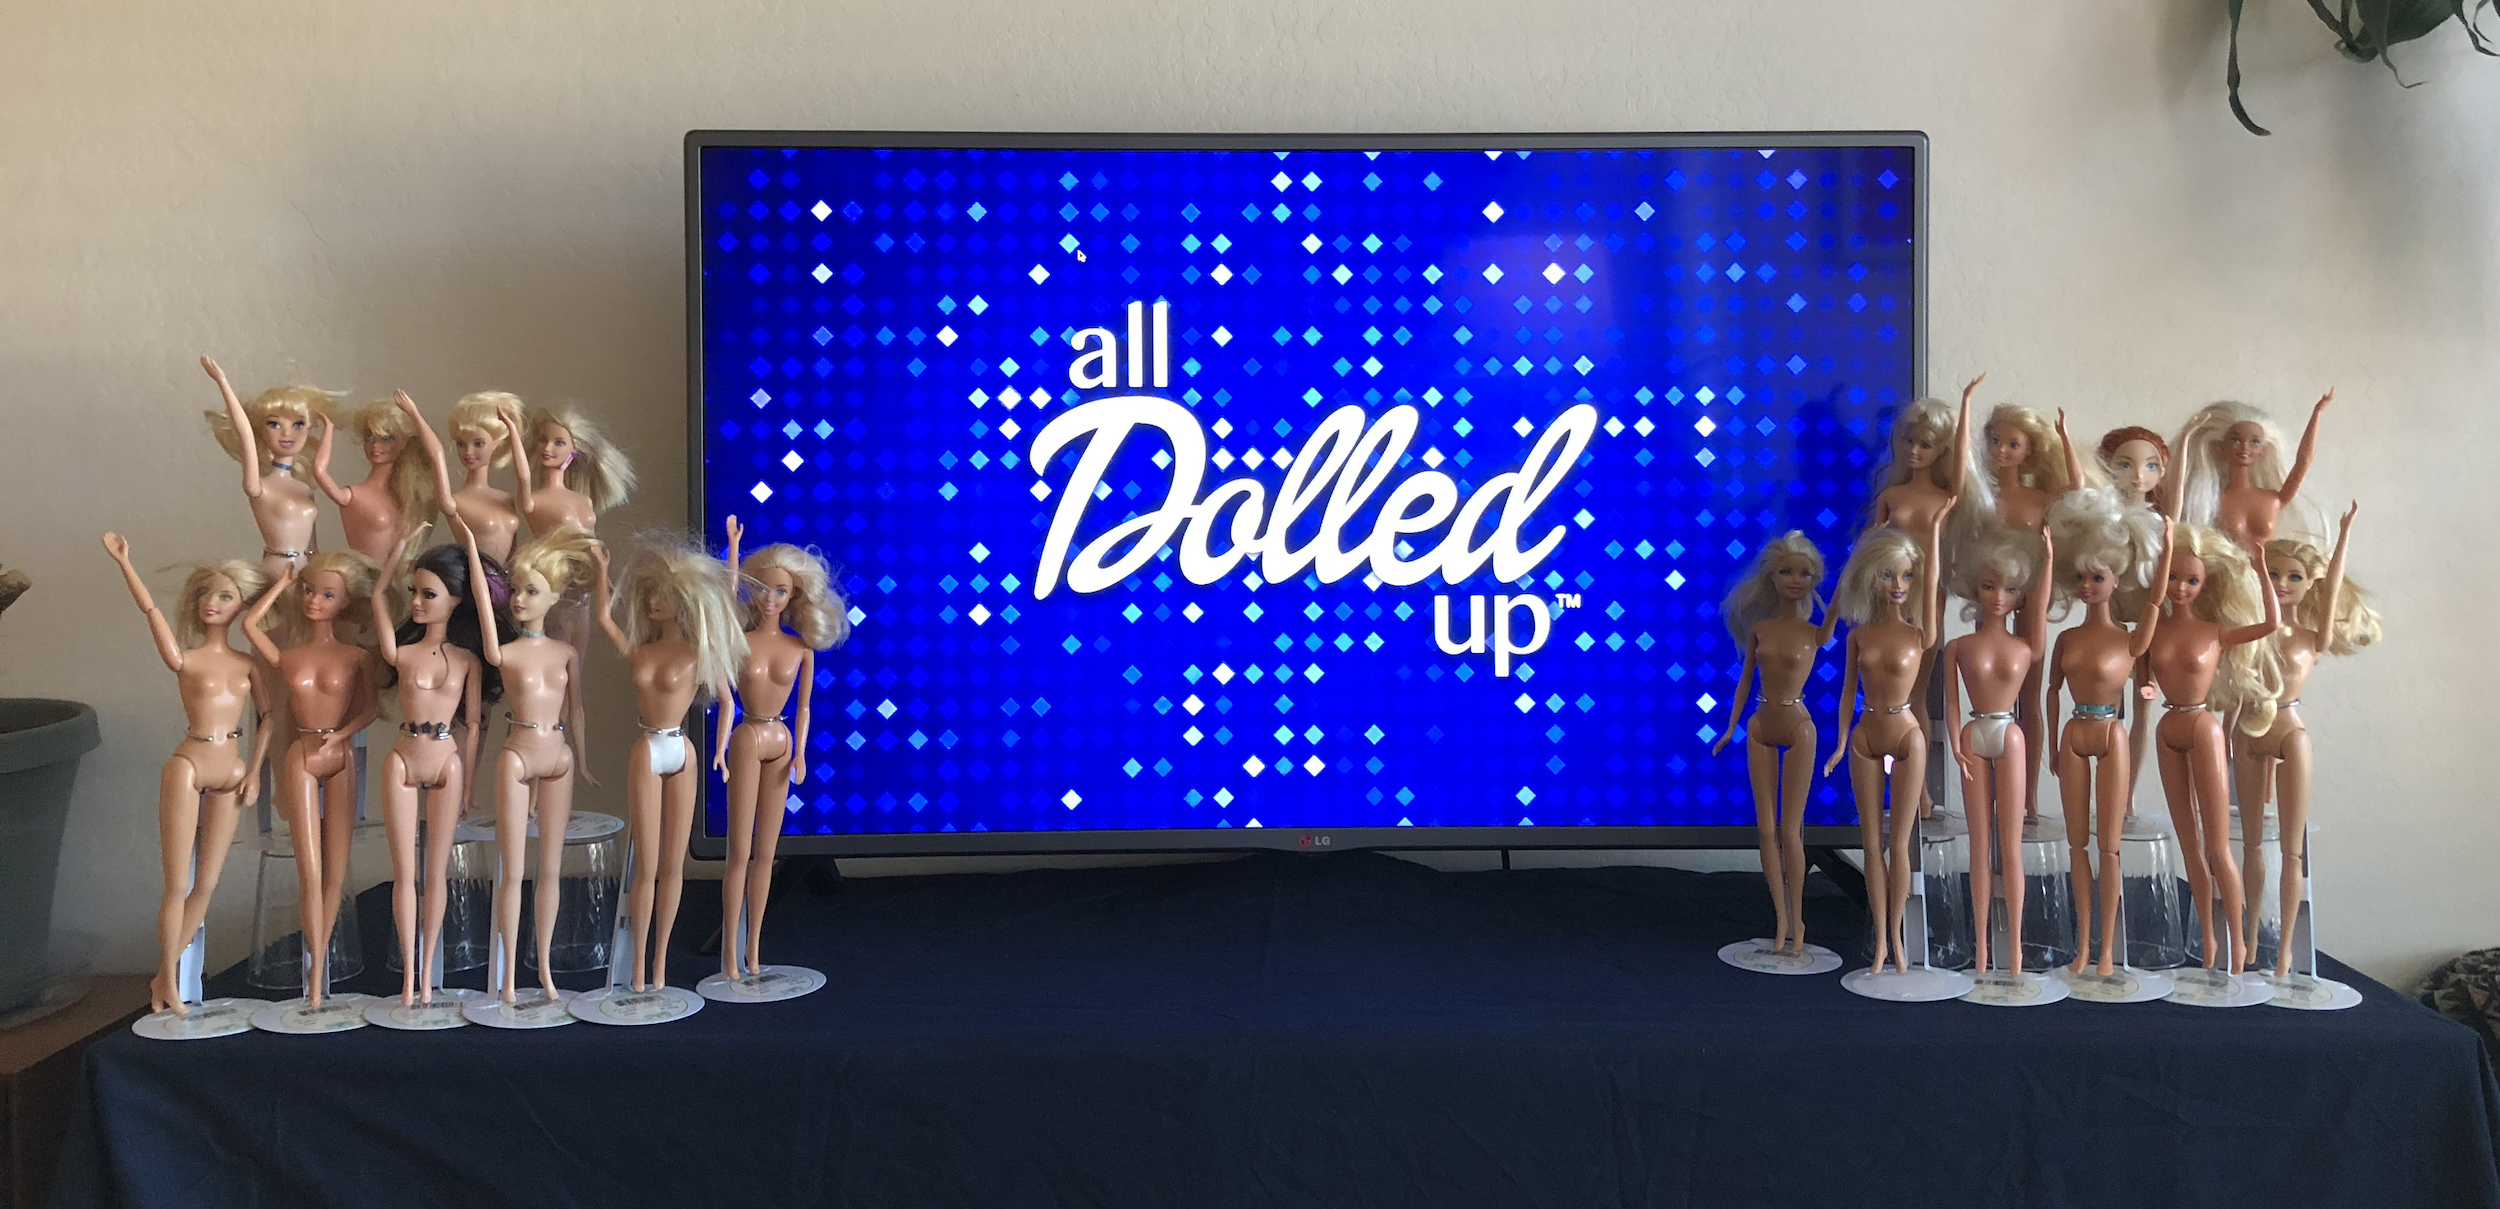 The models displayed on the left and right of the logo on the TV.